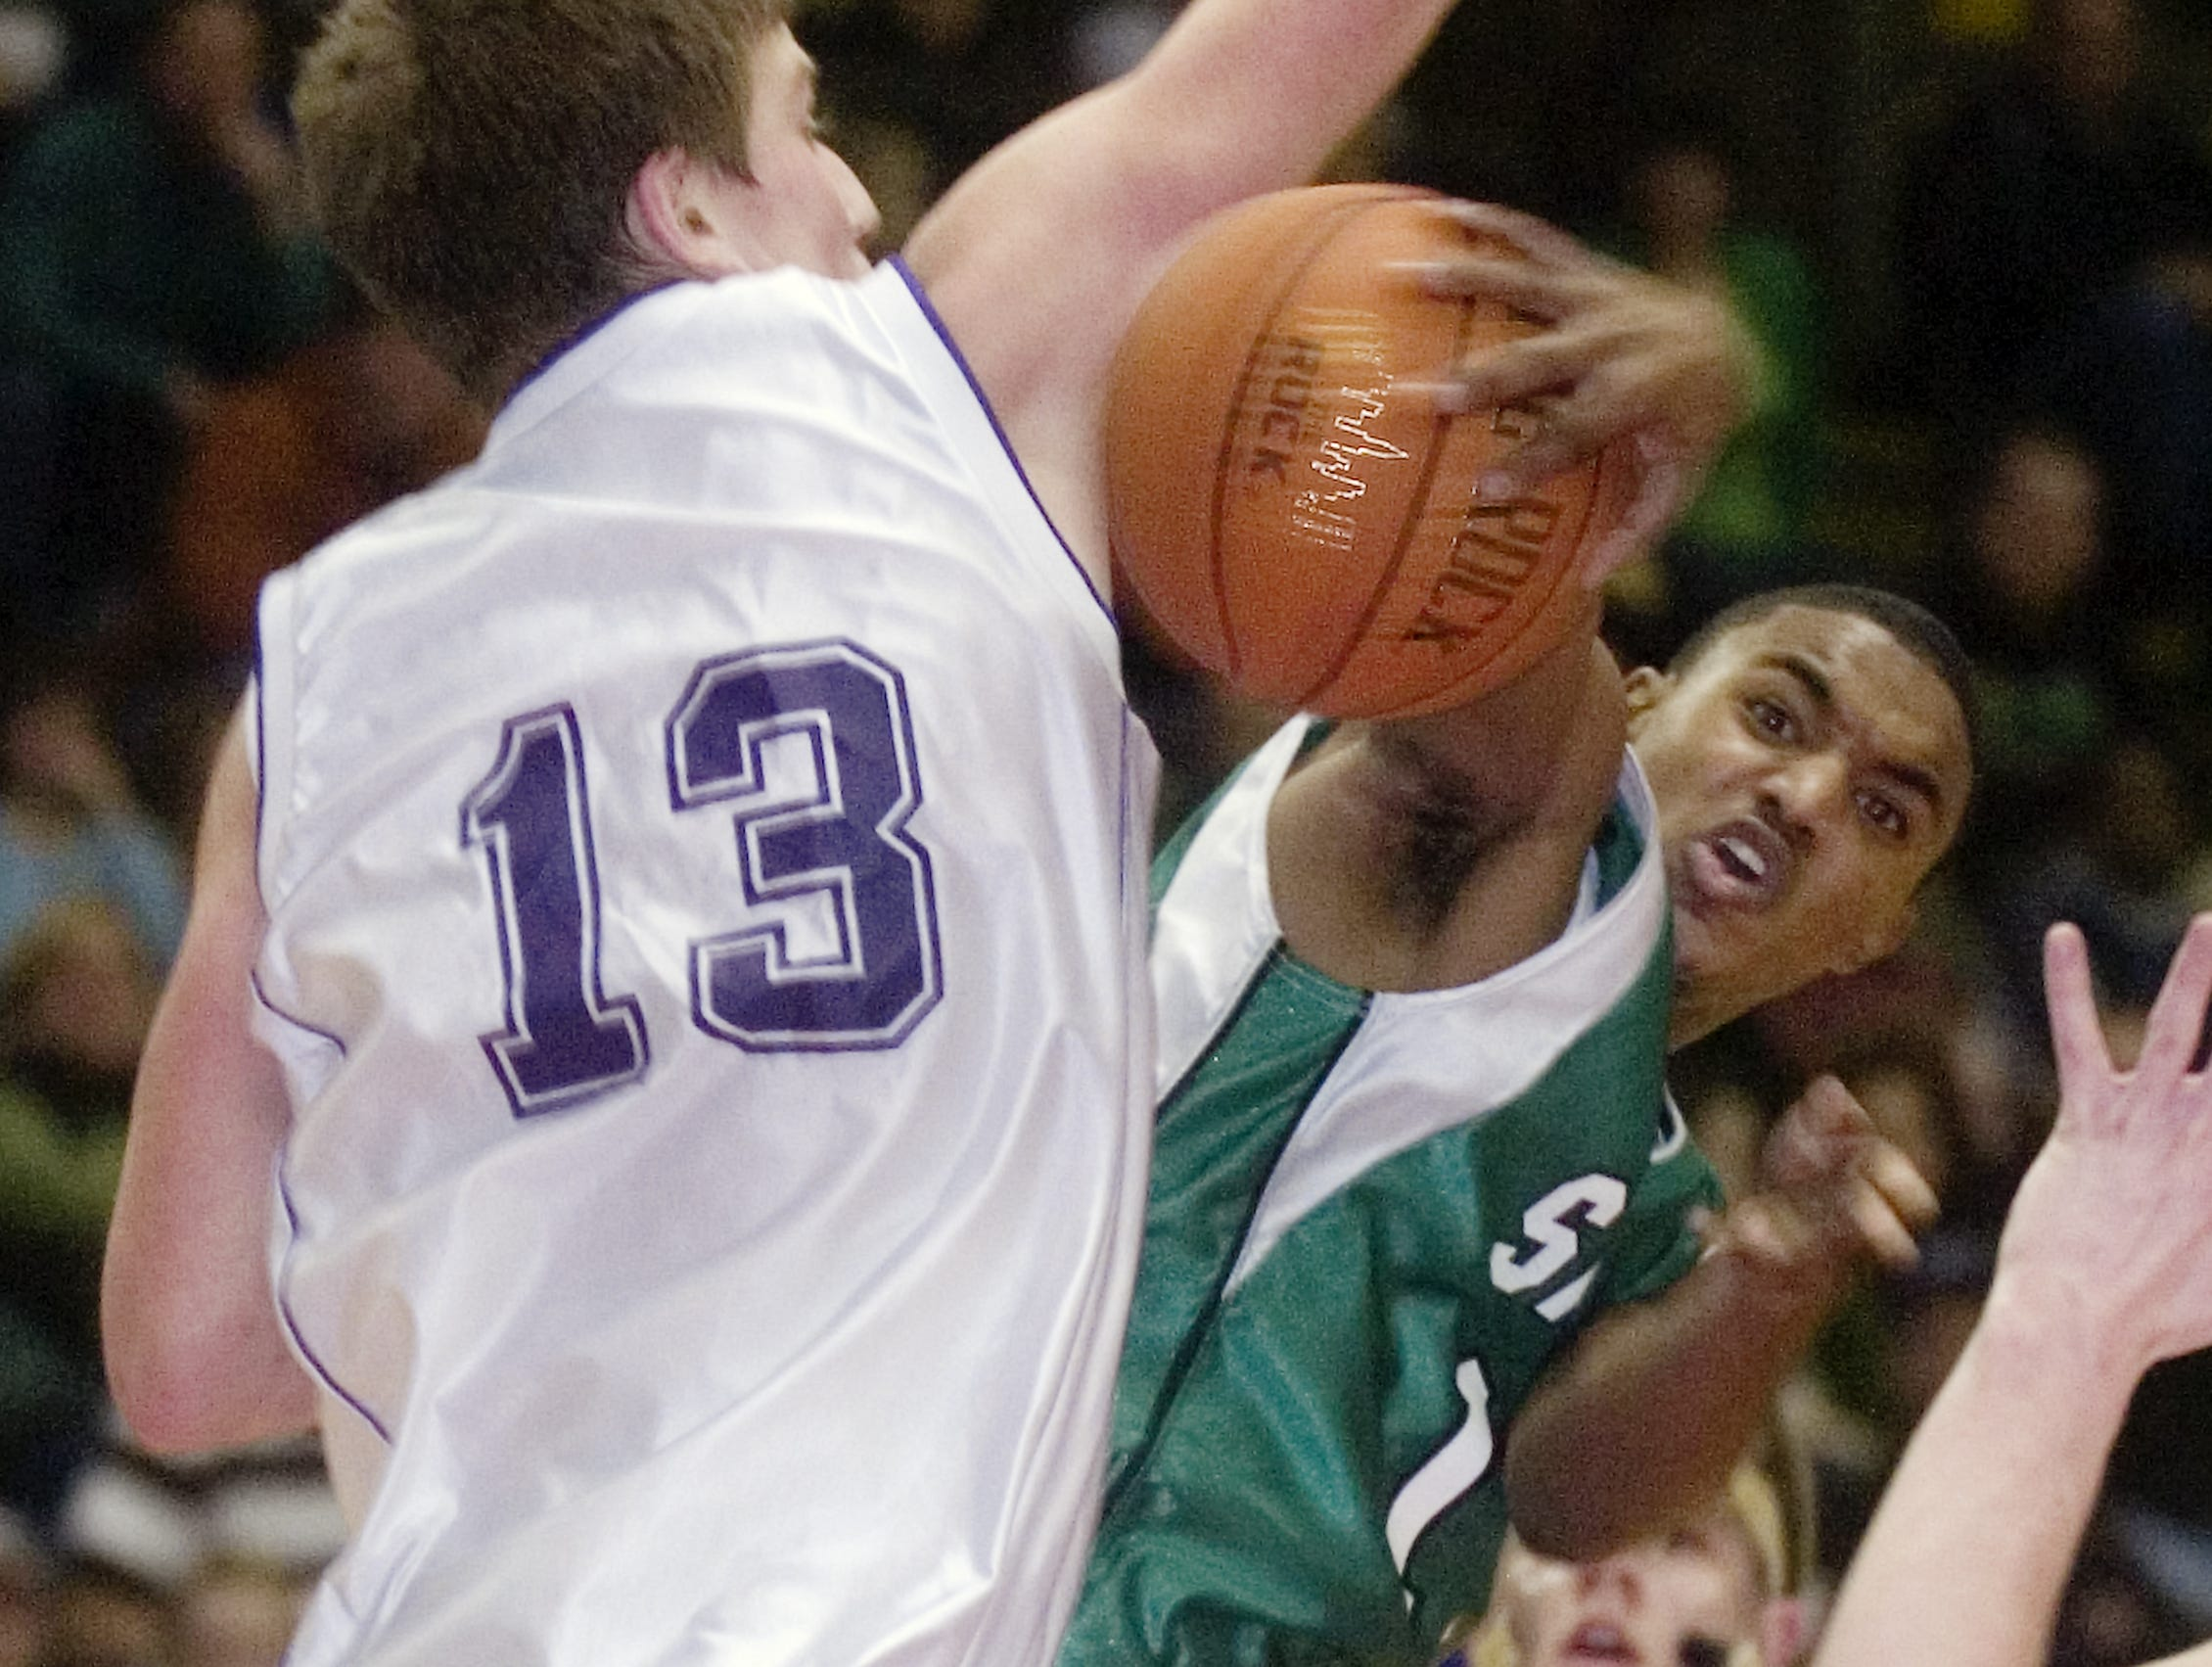 2008: Norwich's Vaughn Labor, left, defends Seton Catholic Central's Greg Johnson in the second quarter of Tuesday's STOP-DWI Holiday Classic game at Broome County Veterans Memorial Arena.